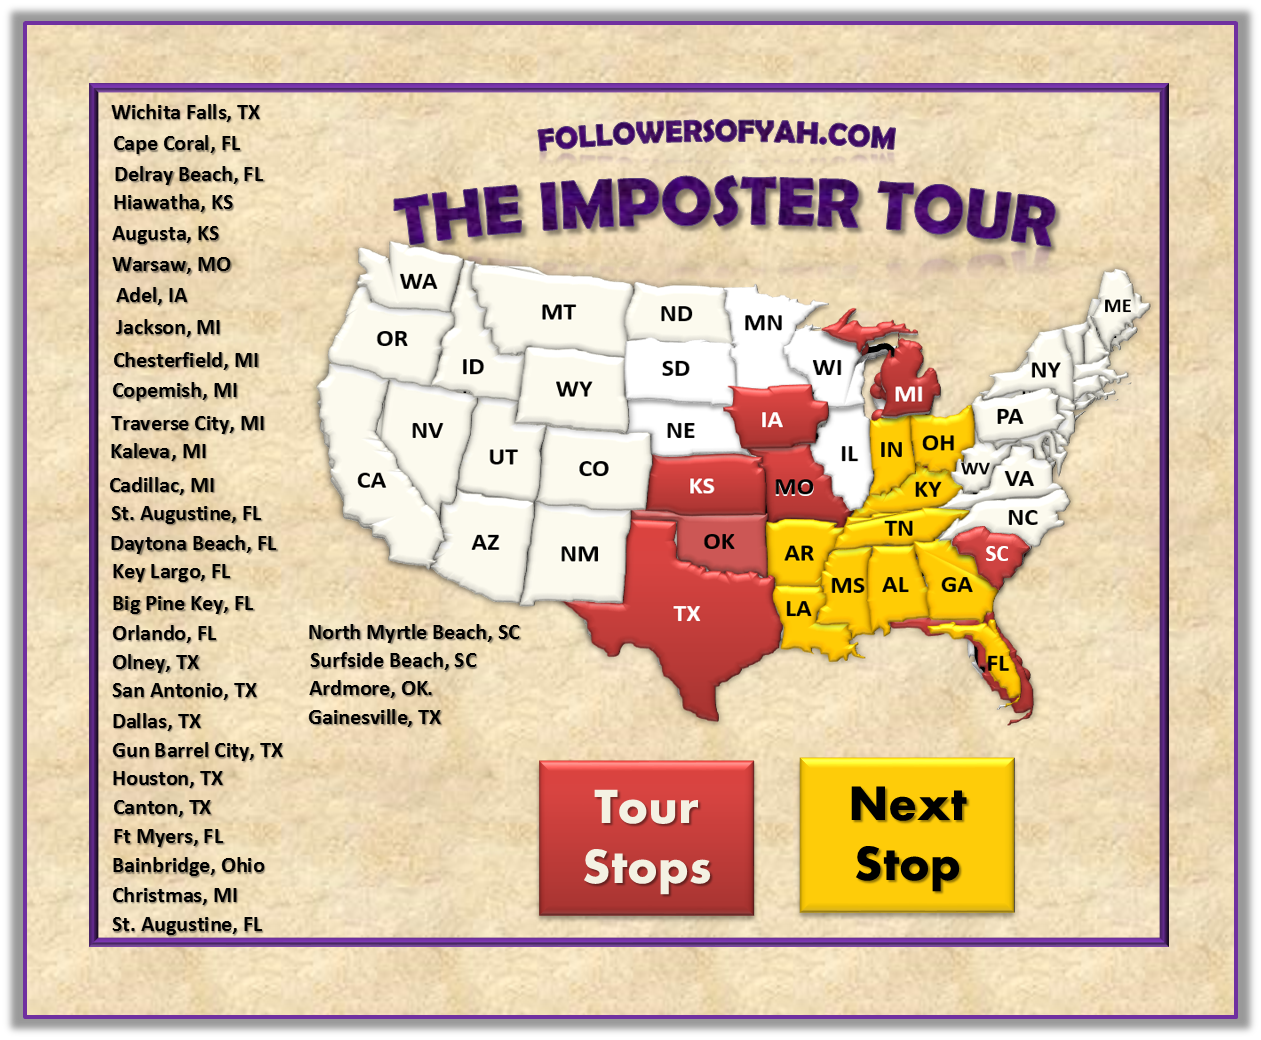 Fellowship  The Imposter Tour